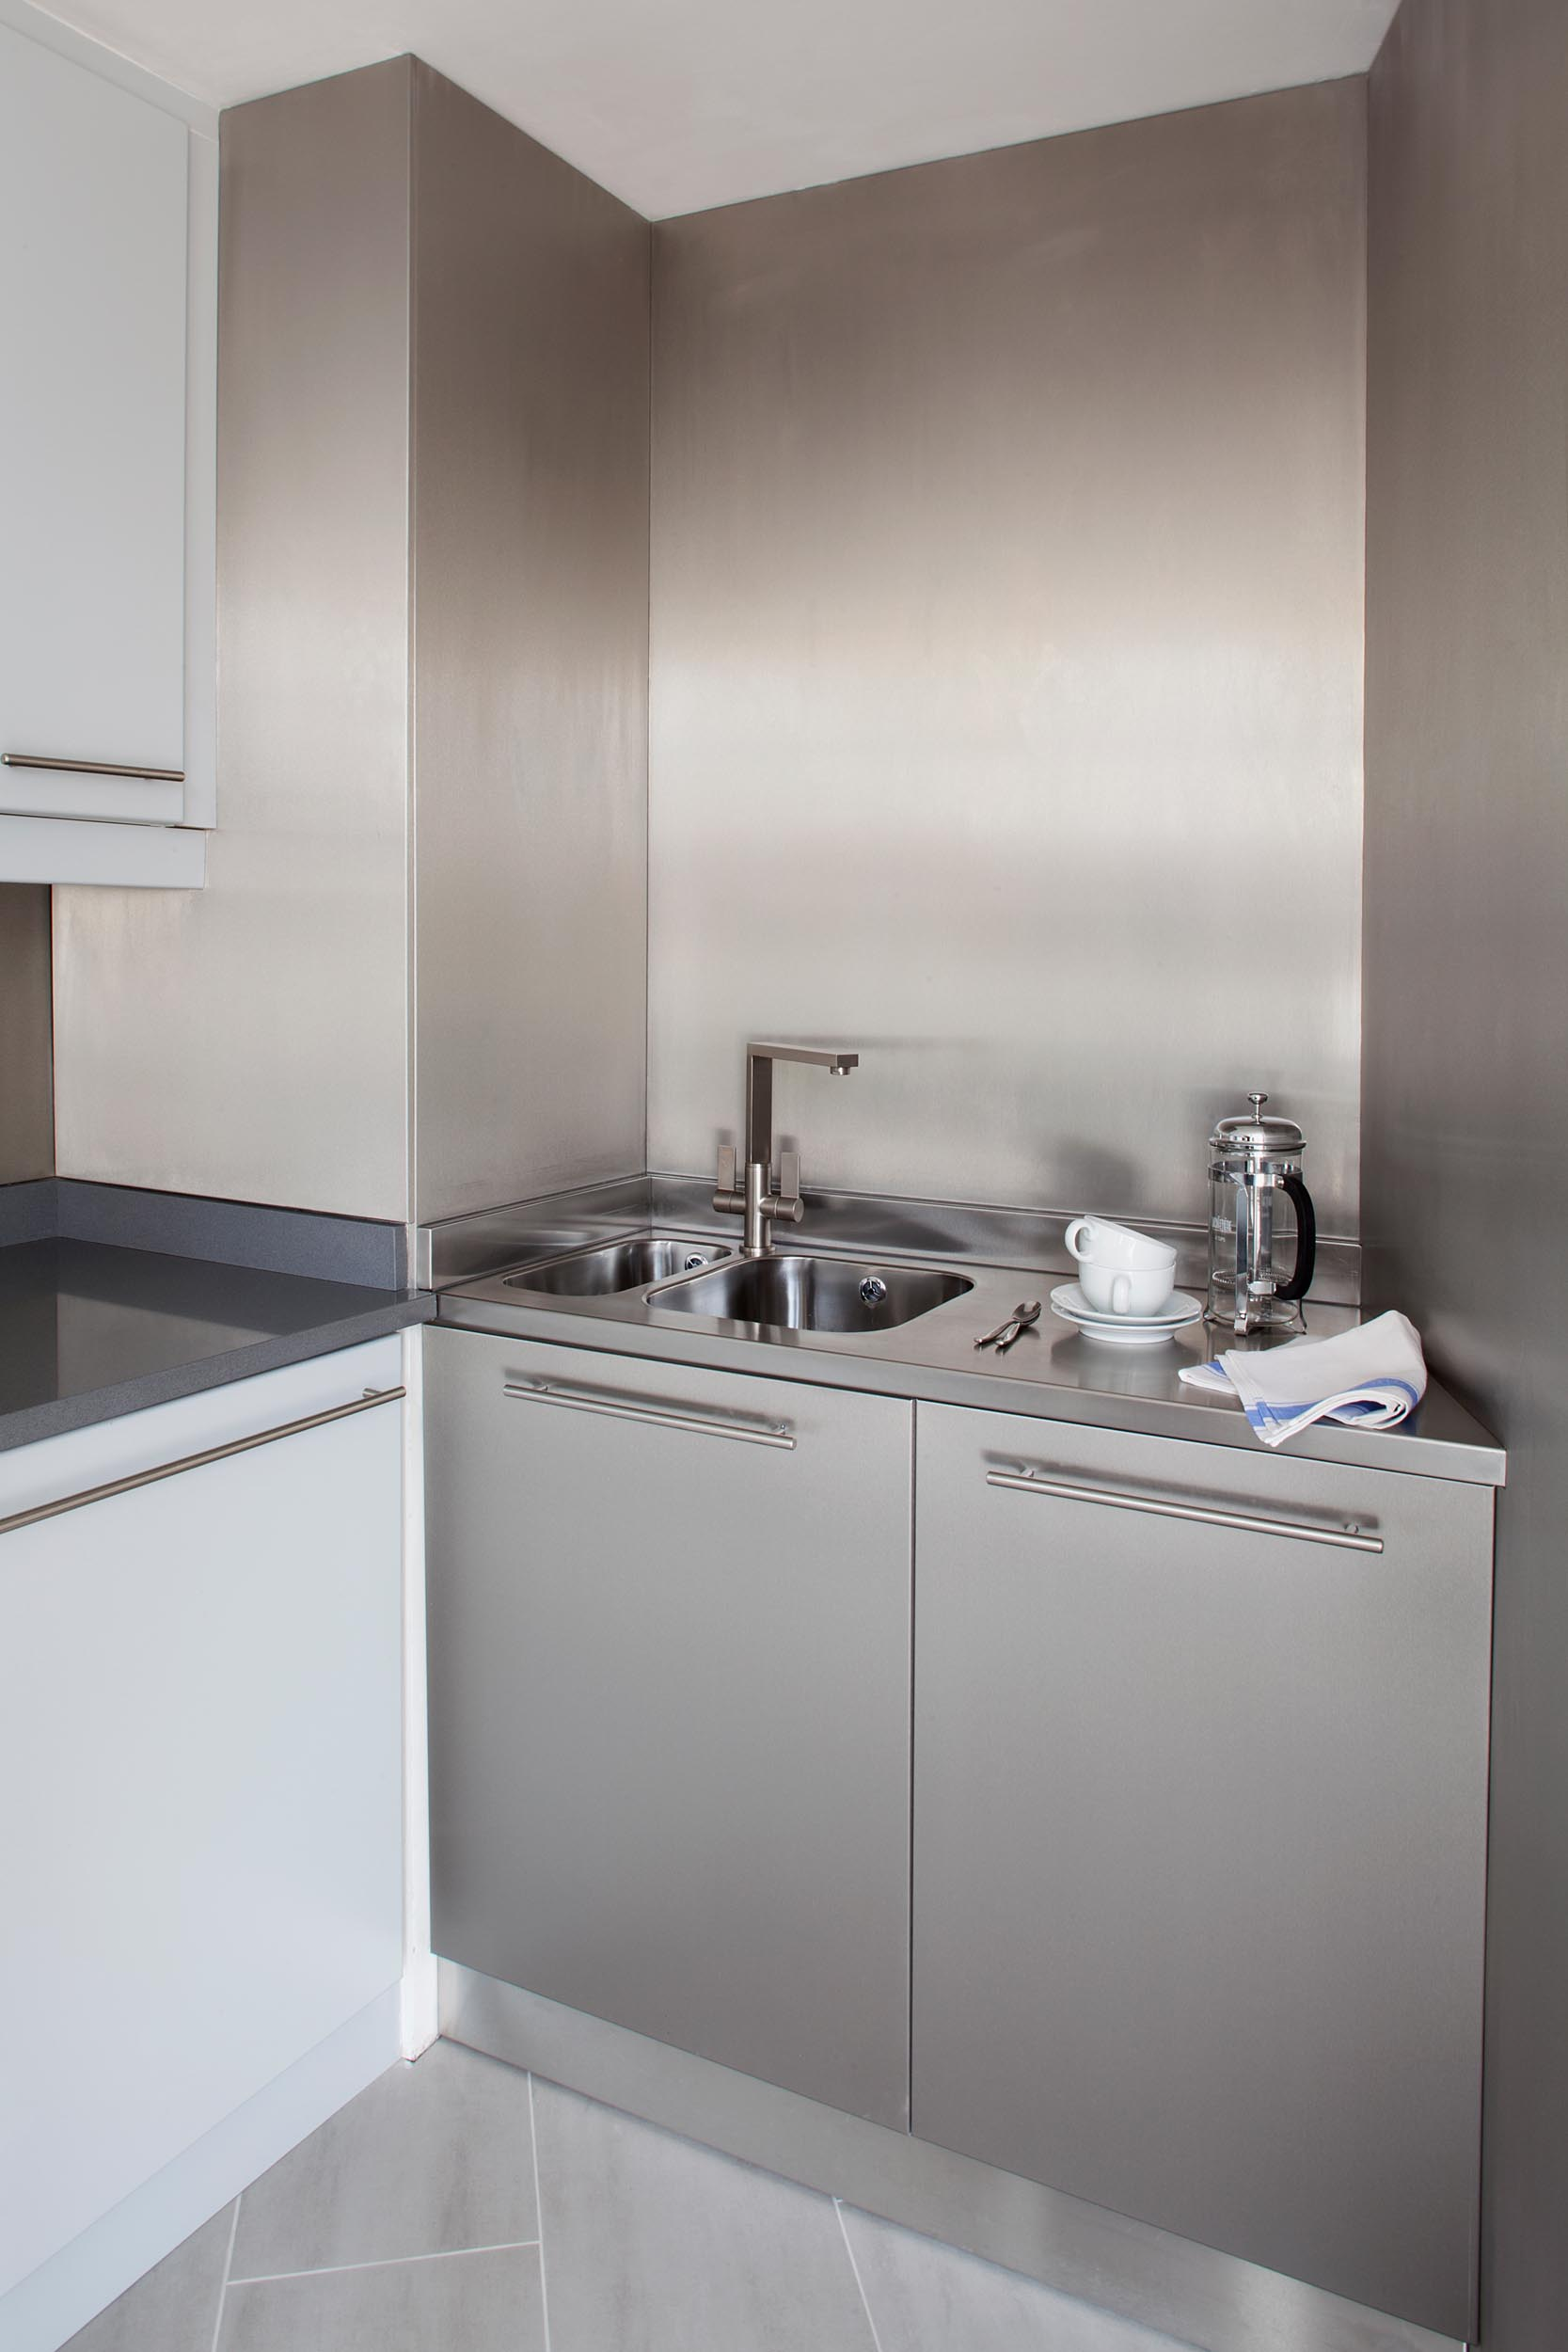 Kitchen - Bankside - RYE Design